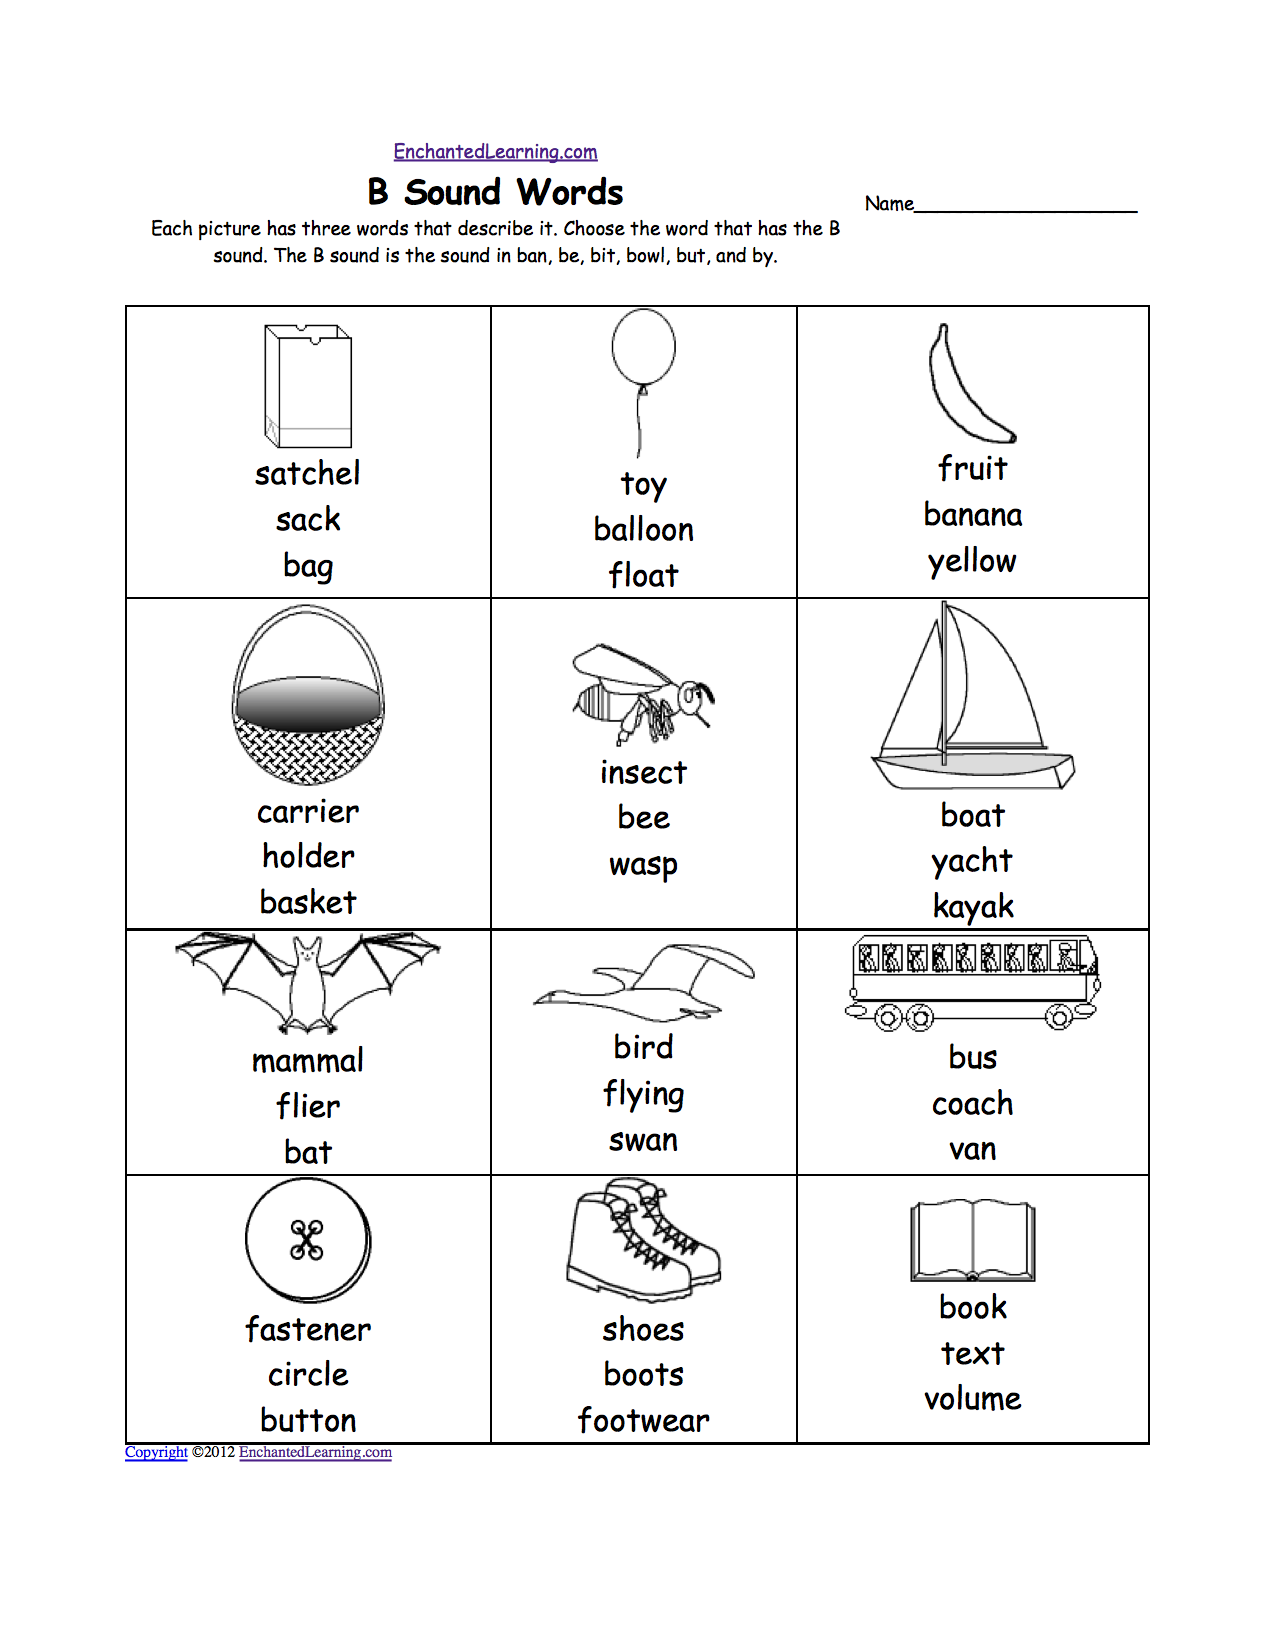 Aldiablosus  Wonderful Phonics Worksheets Multiple Choice Worksheets To Print  With Magnificent Quotbquot Sound Phonics Worksheet Multiple Choice Each Picture Has Three Words That Describe It Choose The Word That Has A Quotbquot Sound The Quotbquot Sound Is The Sound  With Charming Types Of Chemical Reaction Worksheet Also The Human Respiratory System Worksheet In Addition Color Words Worksheet And Preschool Shape Worksheets As Well As Biotic And Abiotic Factors Worksheet Additionally Legislative Branch Worksheet From Enchantedlearningcom With Aldiablosus  Magnificent Phonics Worksheets Multiple Choice Worksheets To Print  With Charming Quotbquot Sound Phonics Worksheet Multiple Choice Each Picture Has Three Words That Describe It Choose The Word That Has A Quotbquot Sound The Quotbquot Sound Is The Sound  And Wonderful Types Of Chemical Reaction Worksheet Also The Human Respiratory System Worksheet In Addition Color Words Worksheet From Enchantedlearningcom